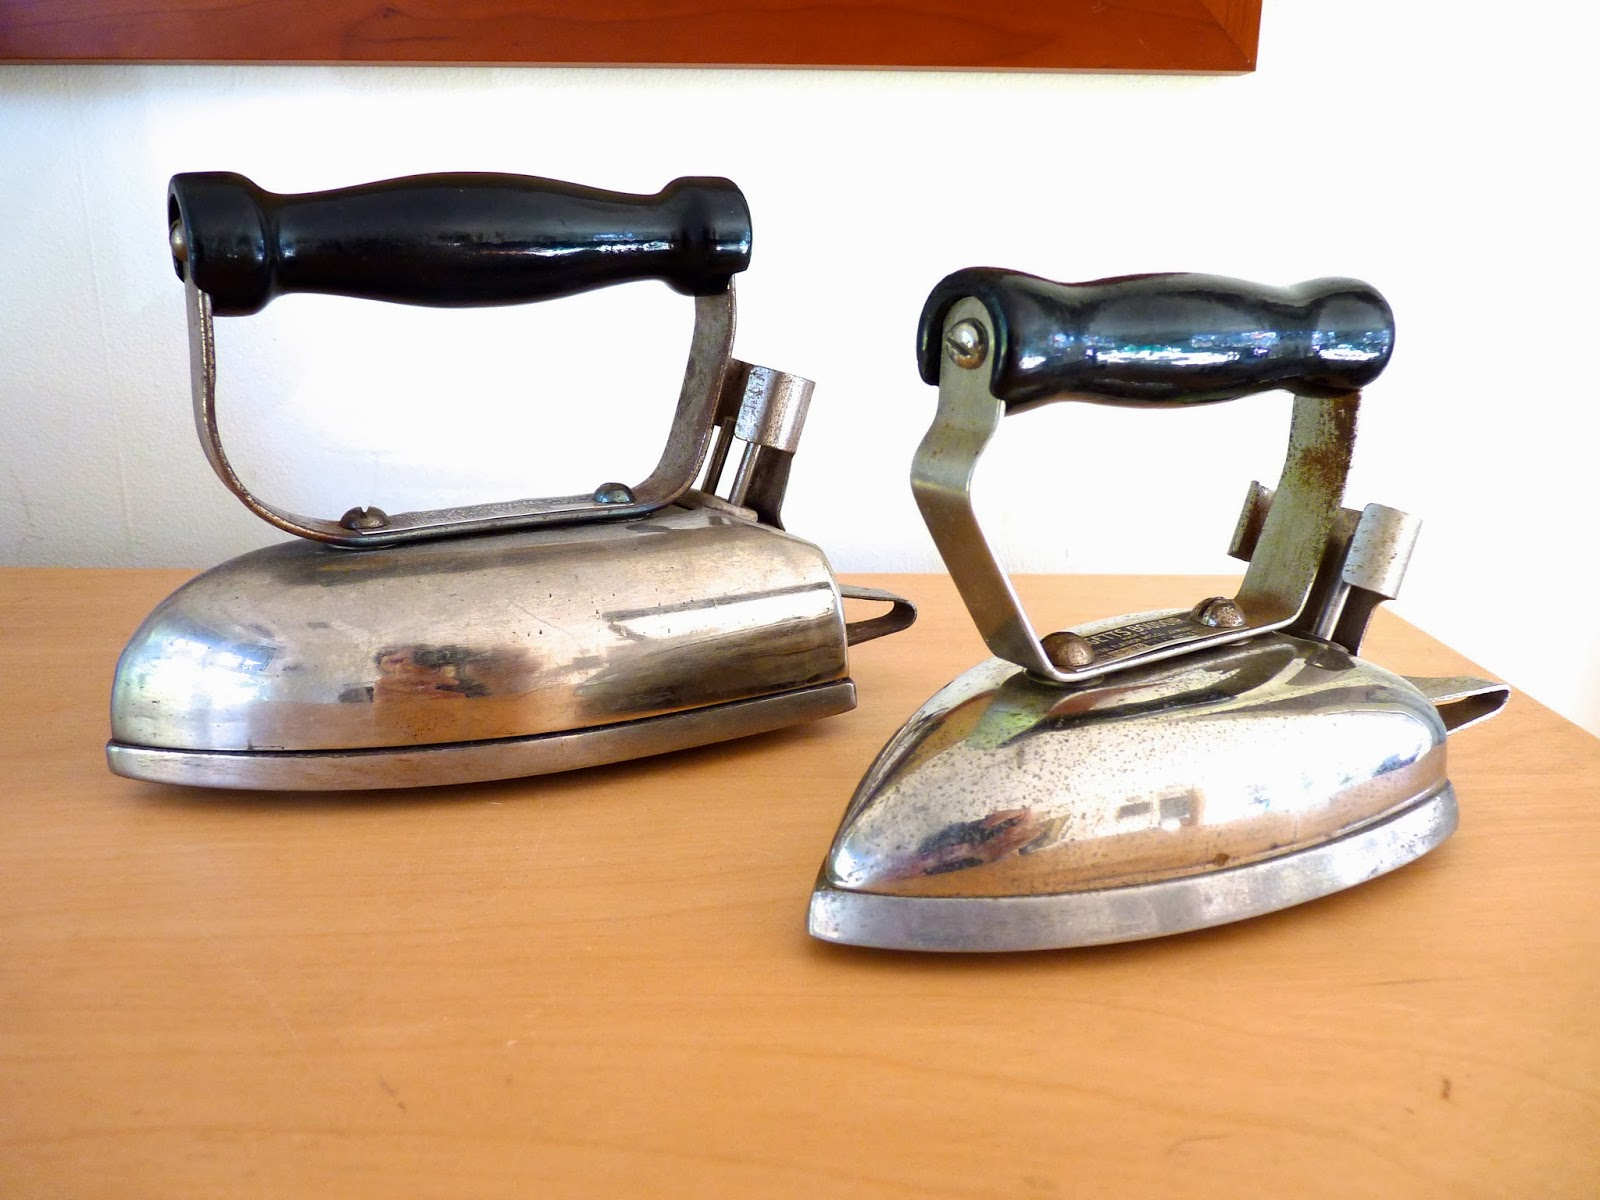 Vintage Electric Irons 20